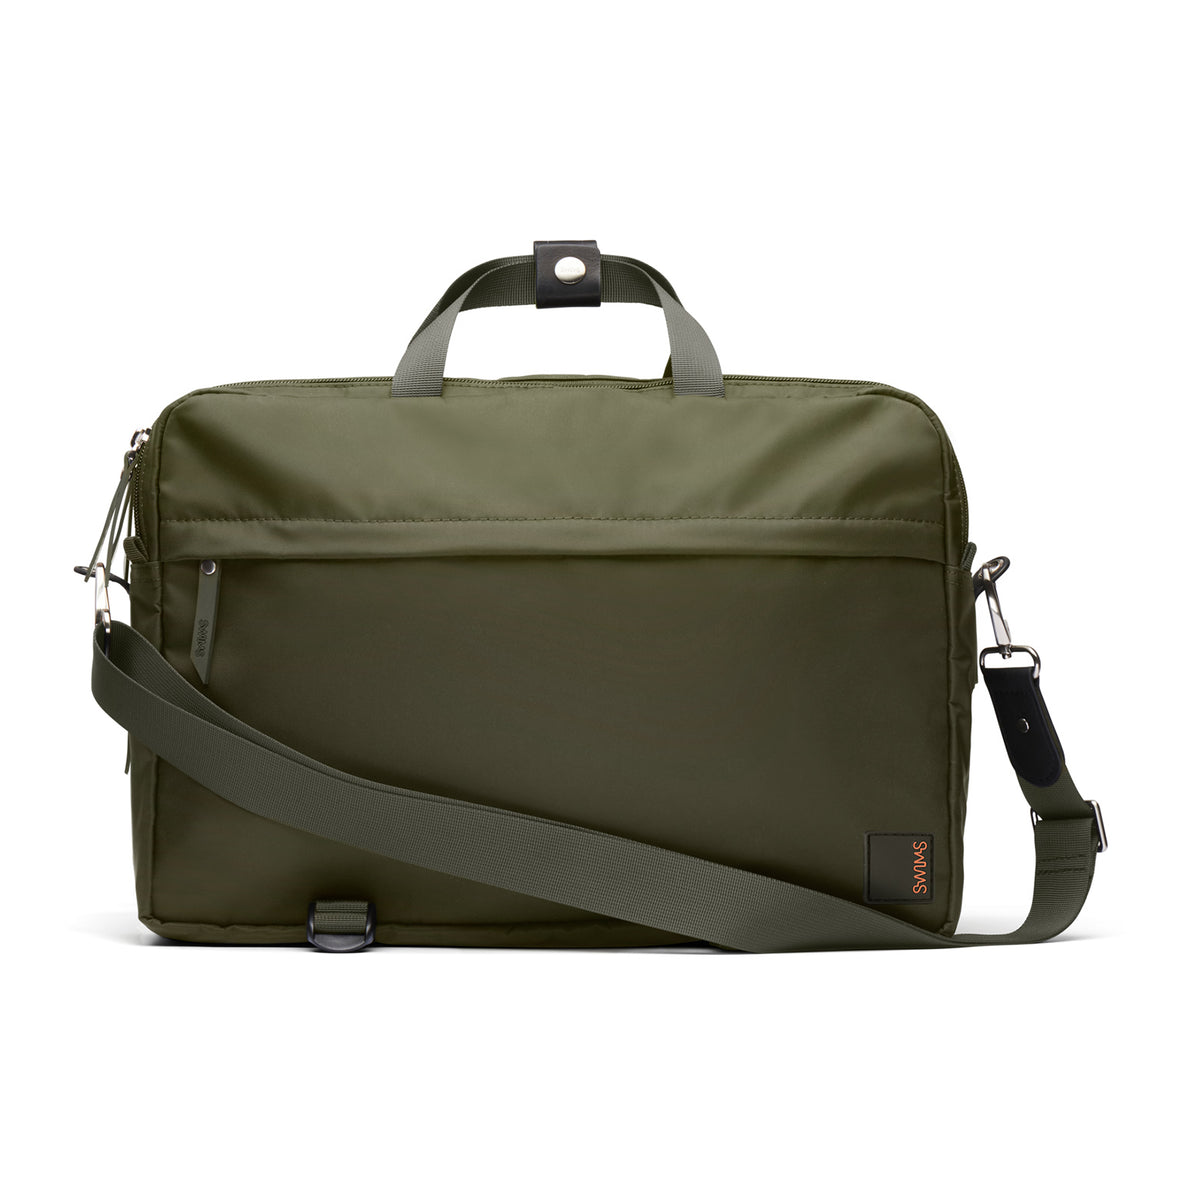 Hybrid bag - background::white,variant::Olive